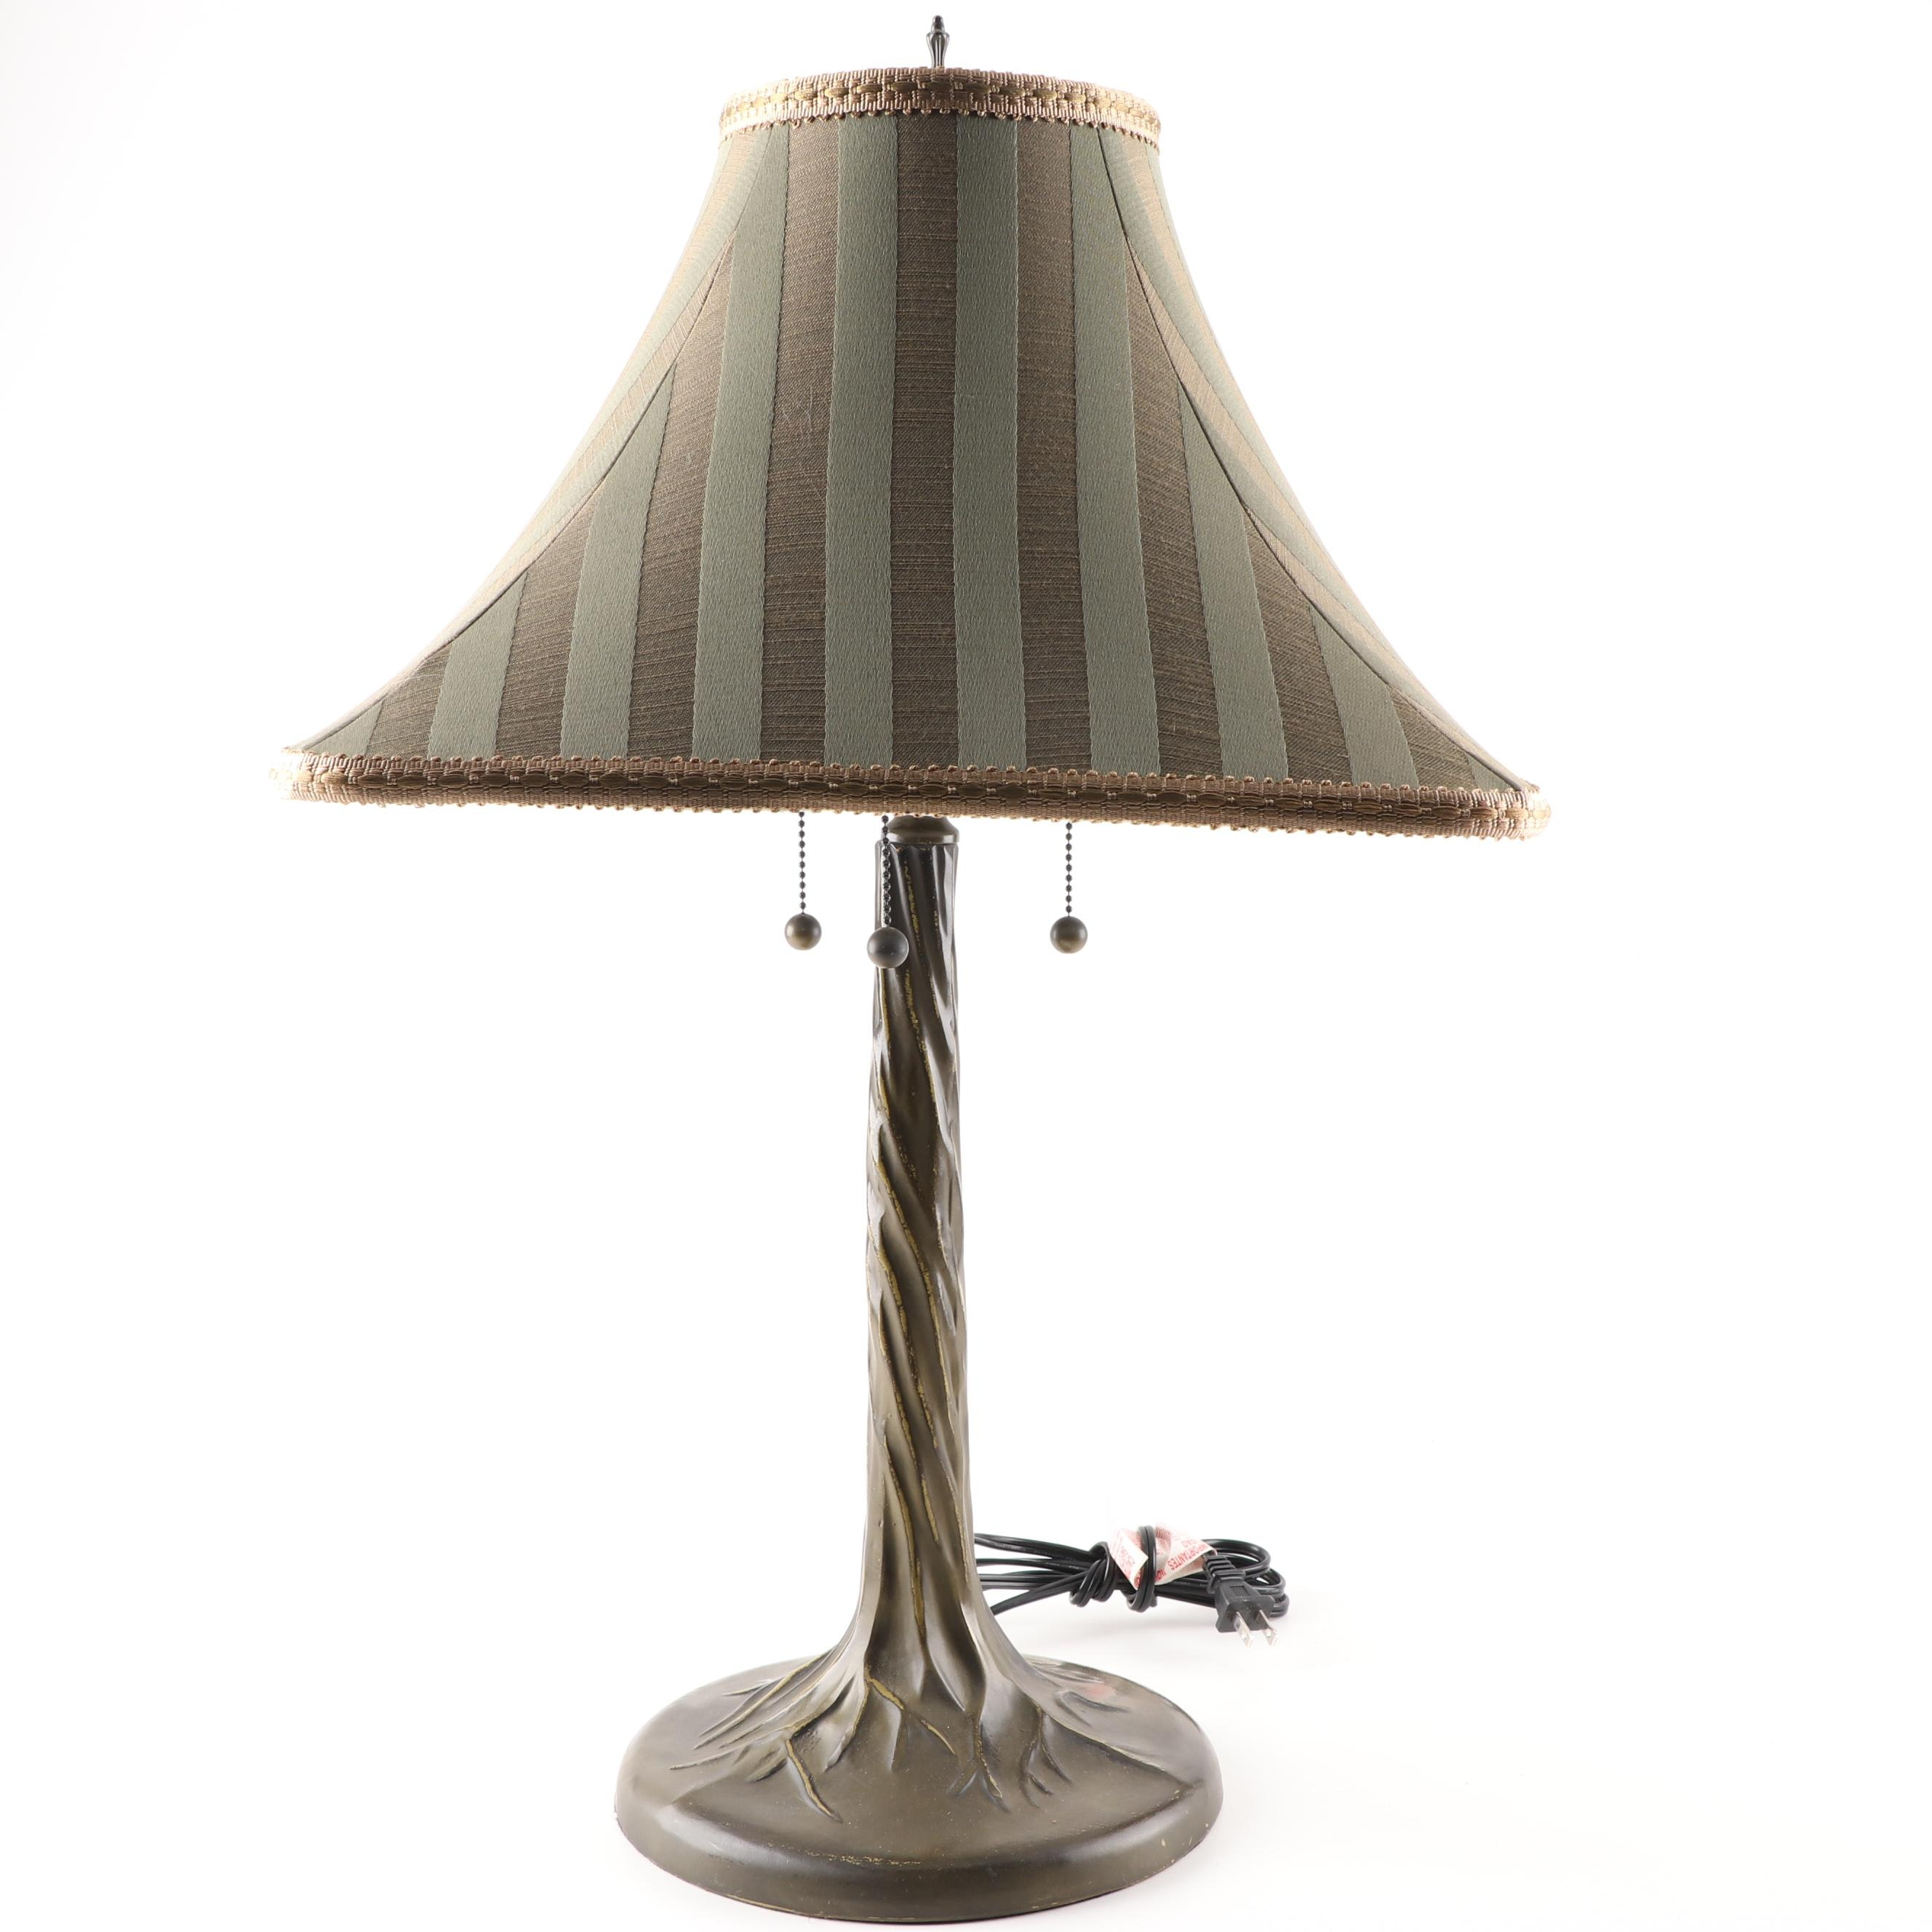 Cast Metal Table Lamp With Striped Shade